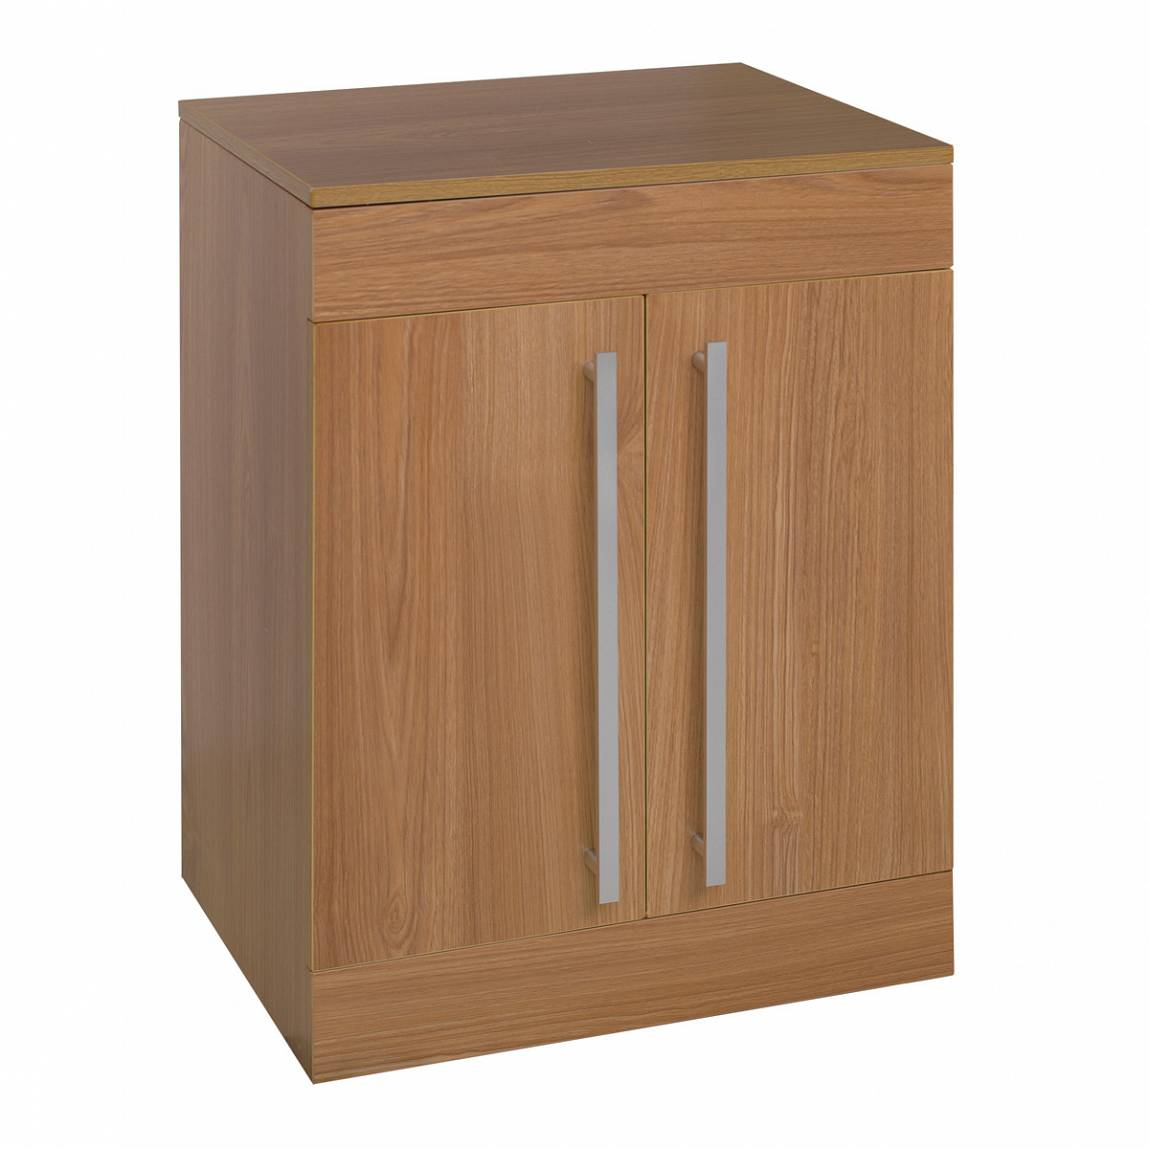 Image of Odessa Oak Floor Mounted 600 Door Unit